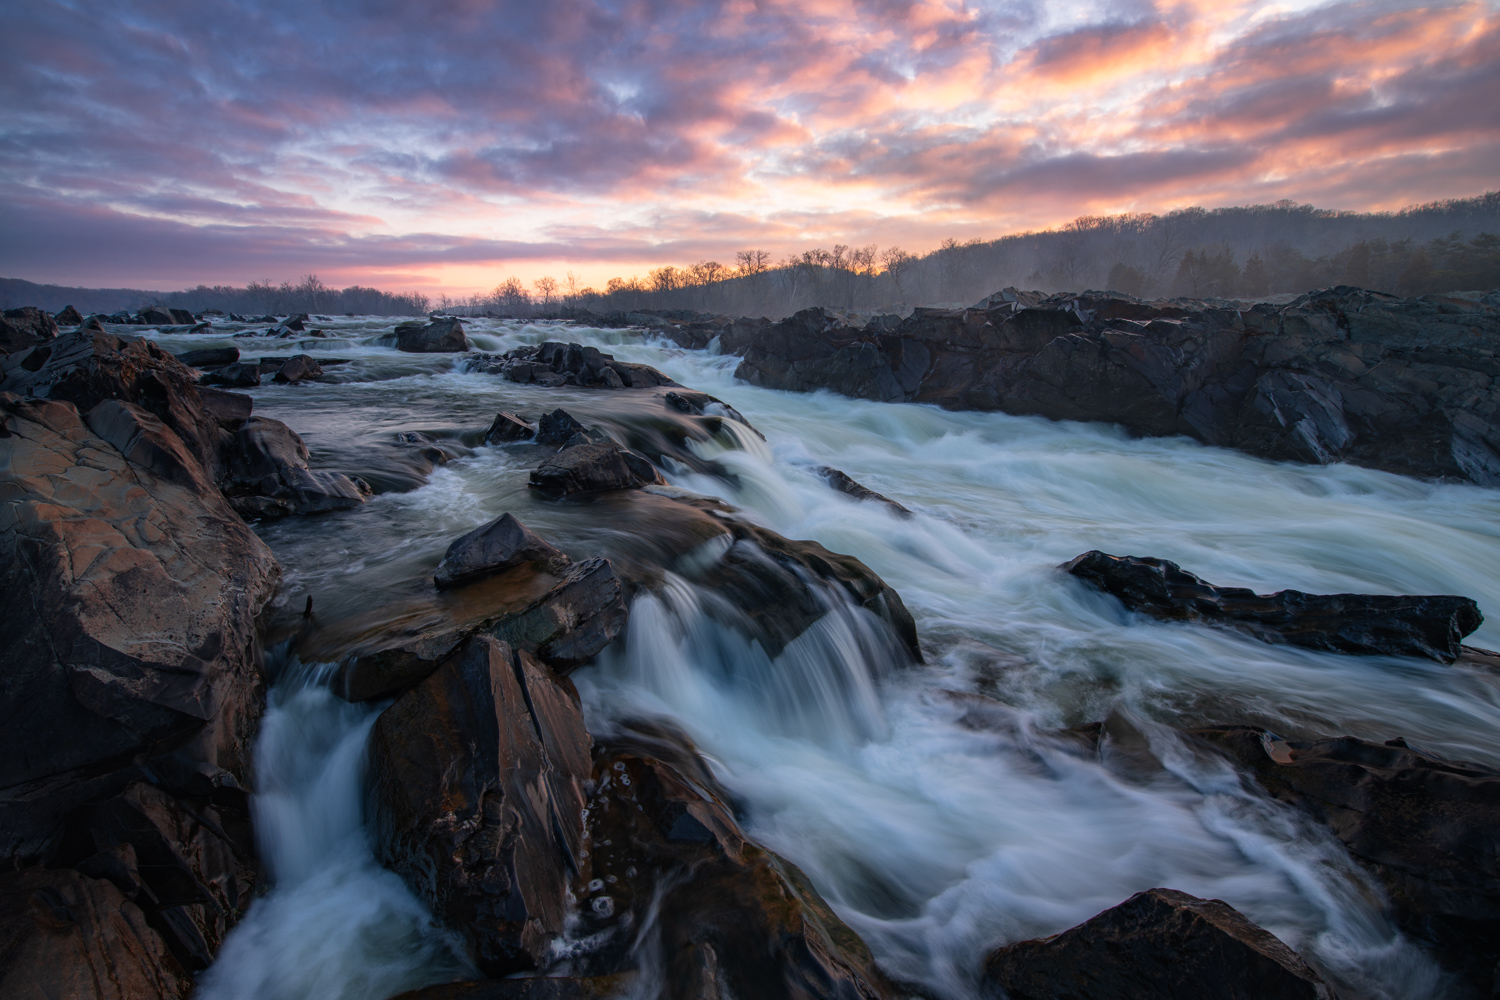 Intense sunrise color abover the waterfalls of Mather Gorge in Great Falls BNational Park, Virginia